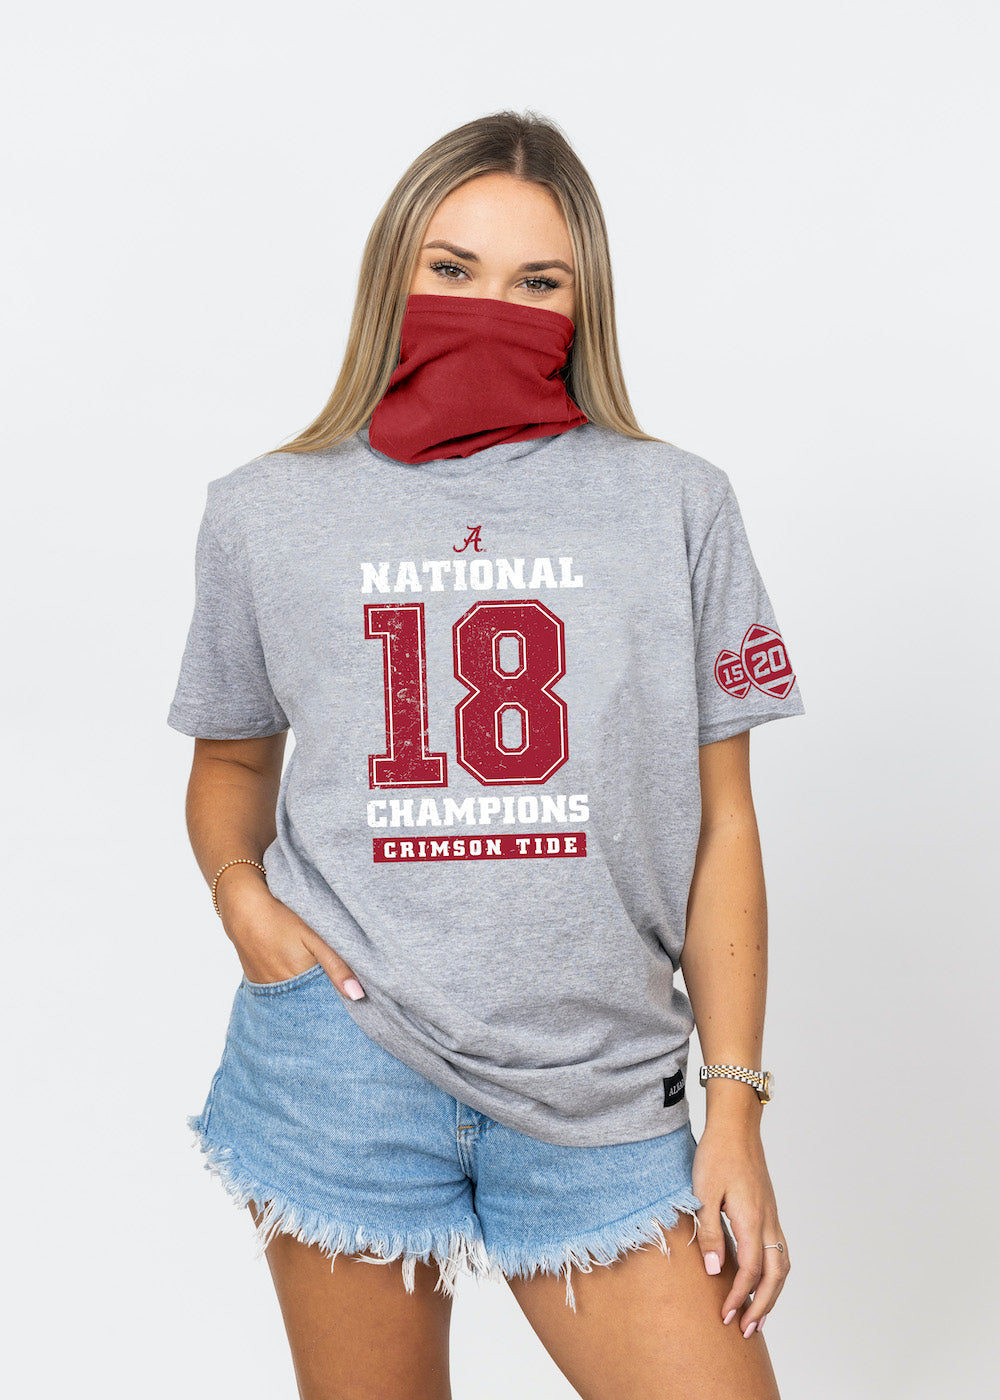 Alabama Crimson Tide College Football Playoff 2020 National Champions LEGACY 18 UNISEX TEE - ALMAR APPAREL